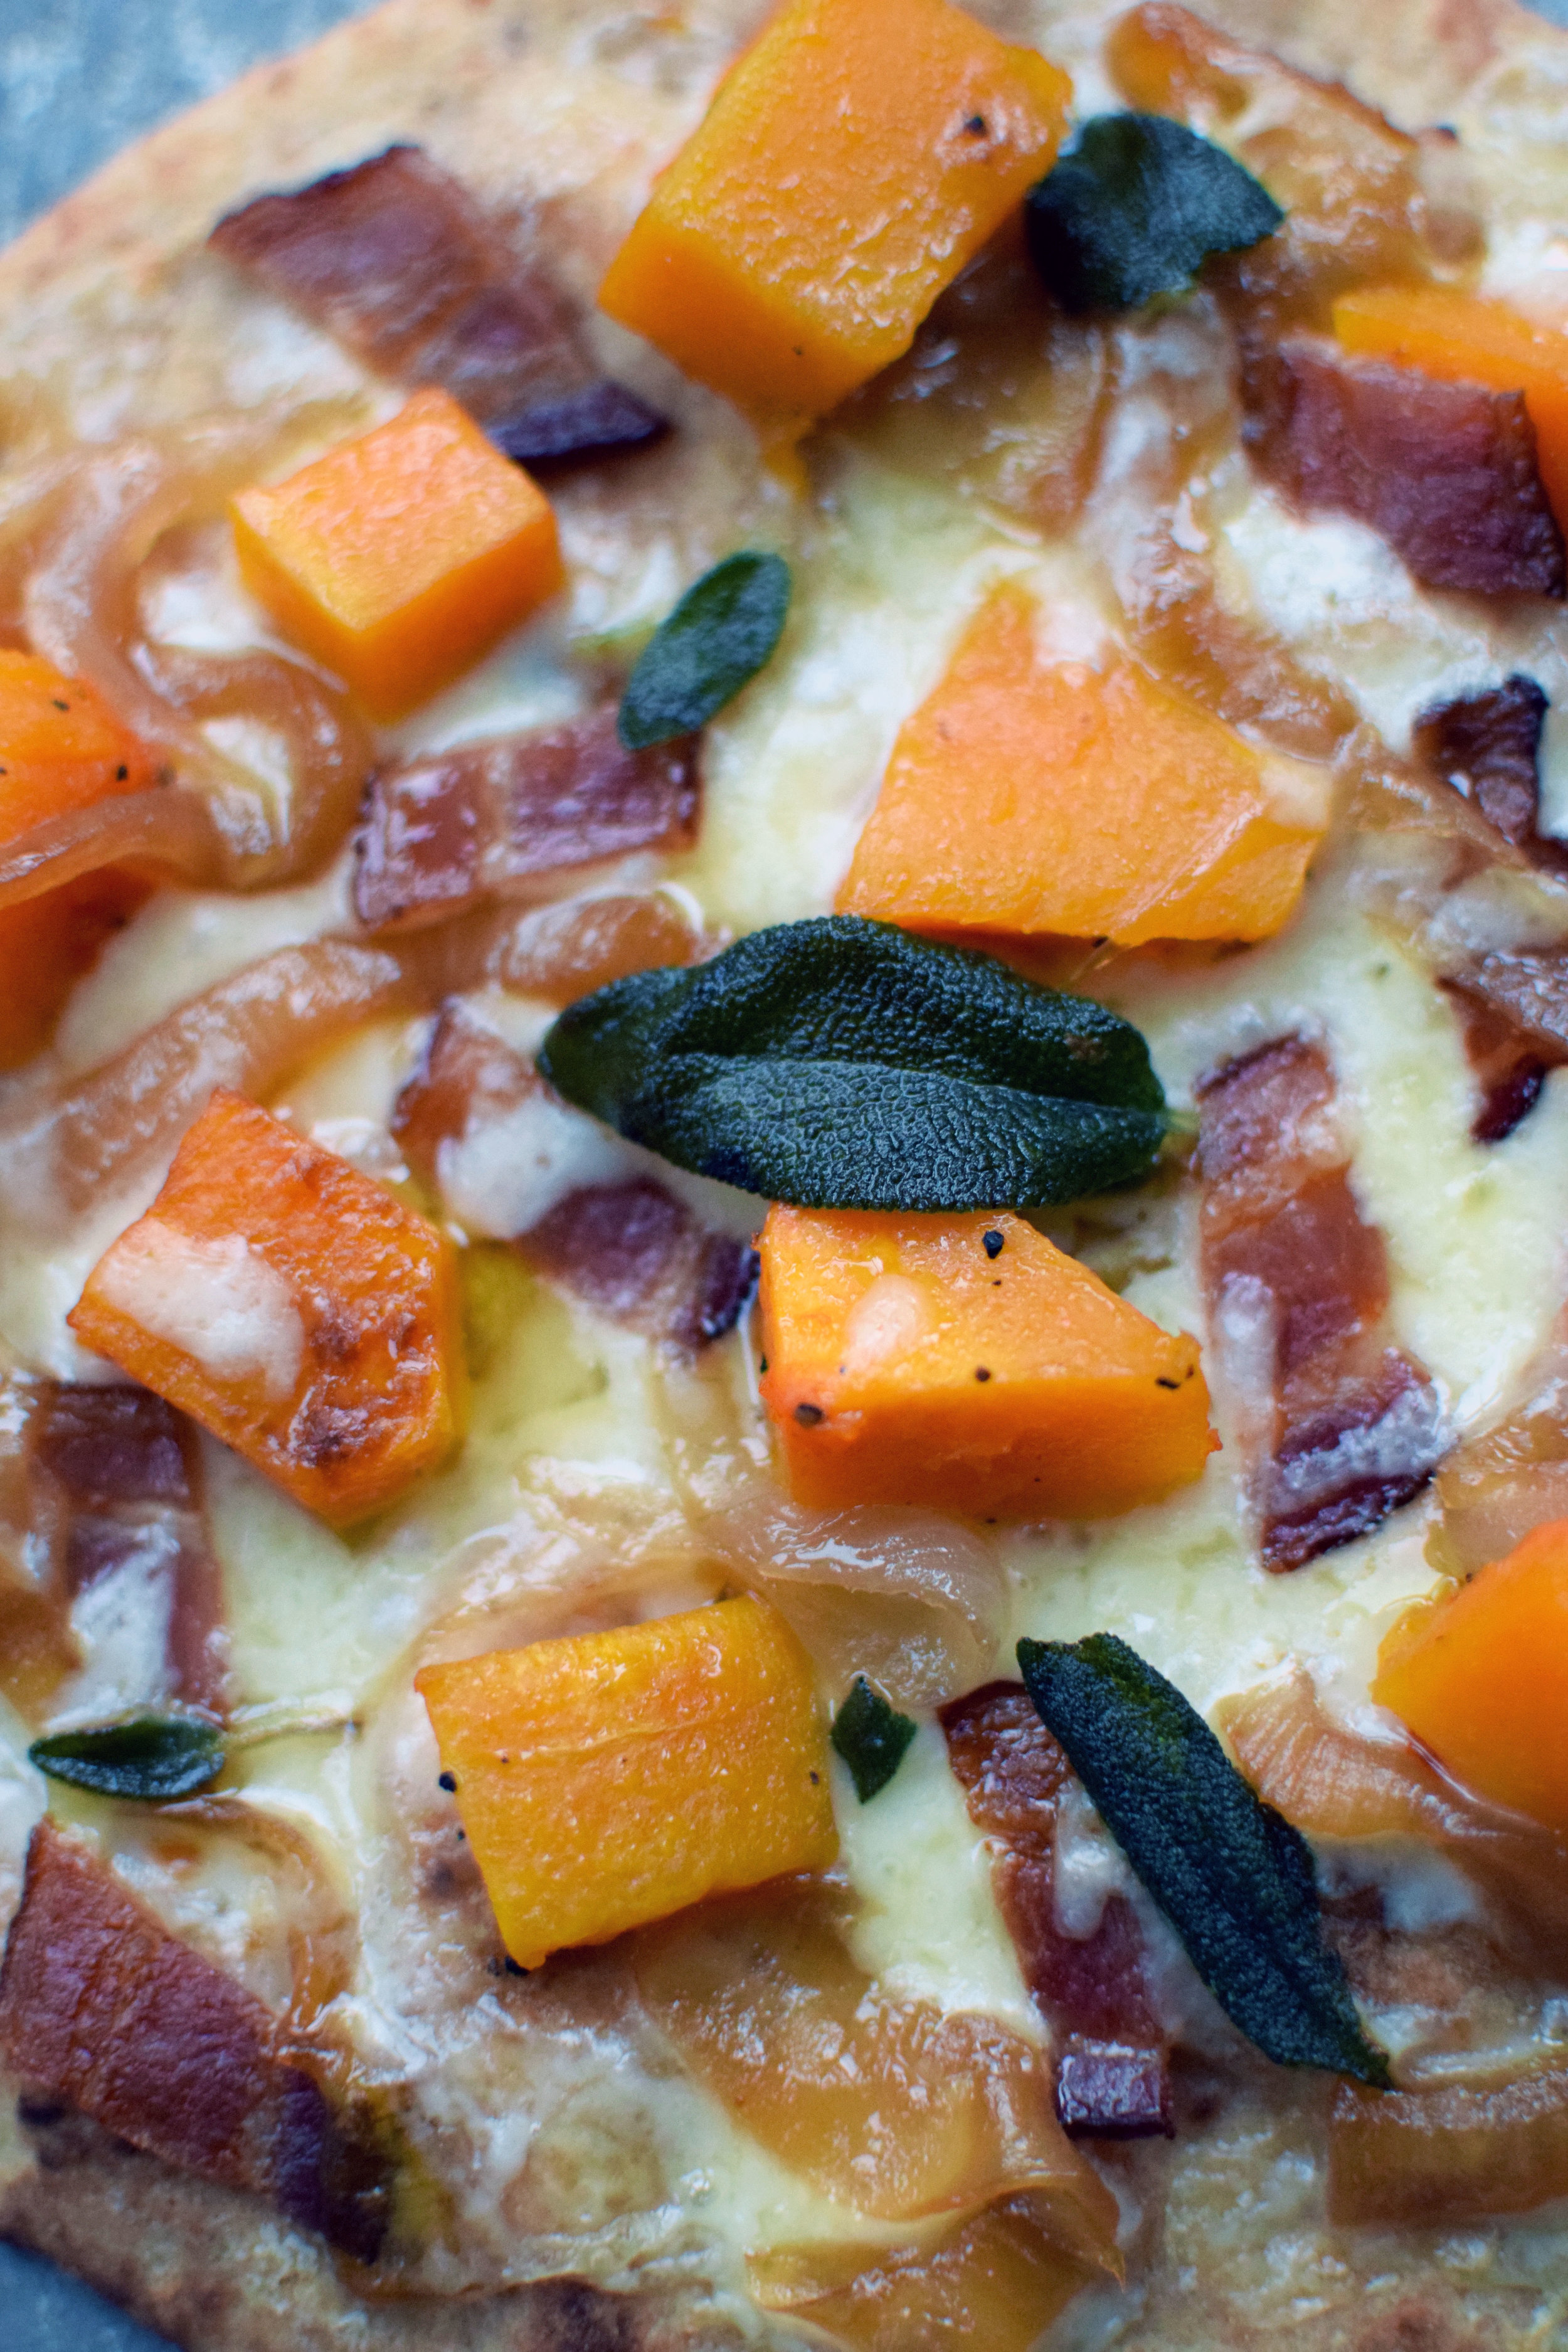 butternut squash, sage, onions, cheddar and bacon make for the perfect autumn pizza| themillennialmenu.com